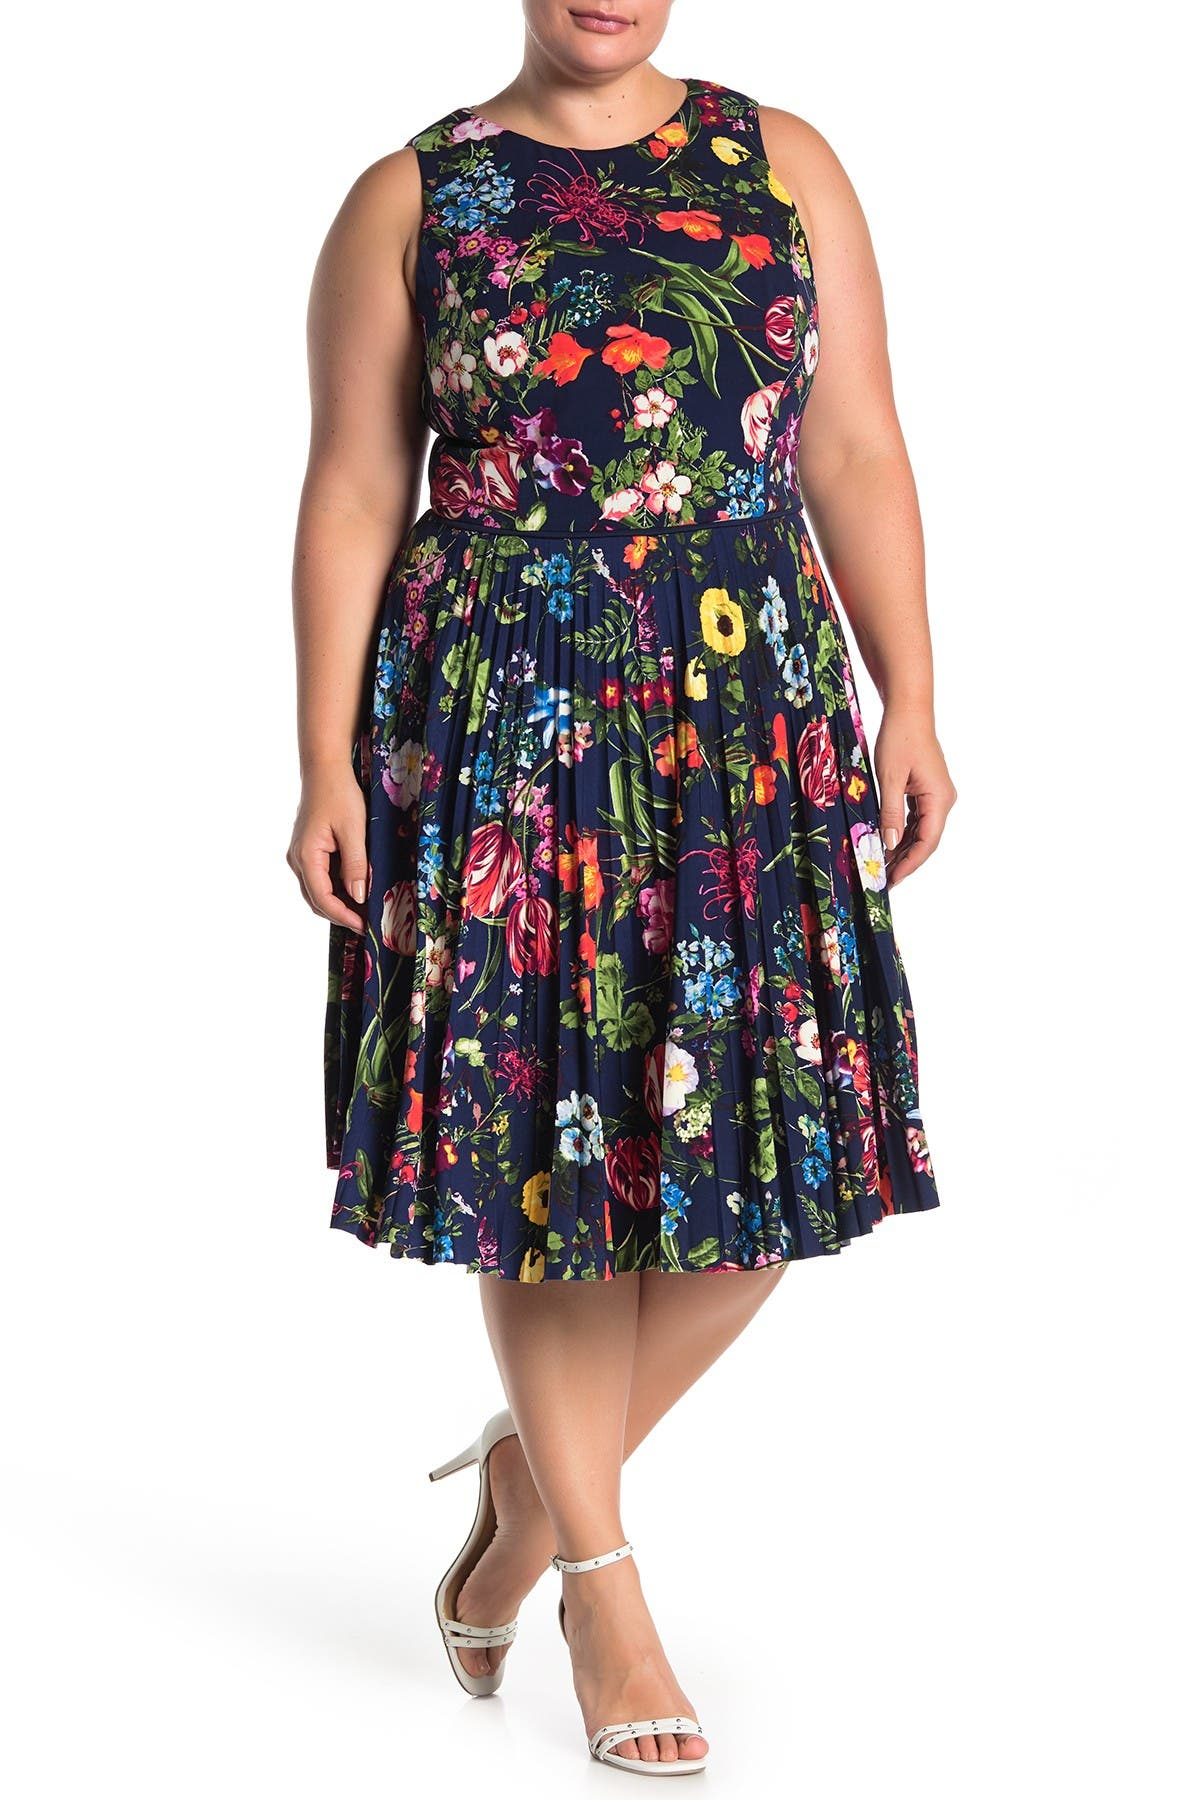 Image of Maggy London Botanical Bloom Printed Dress